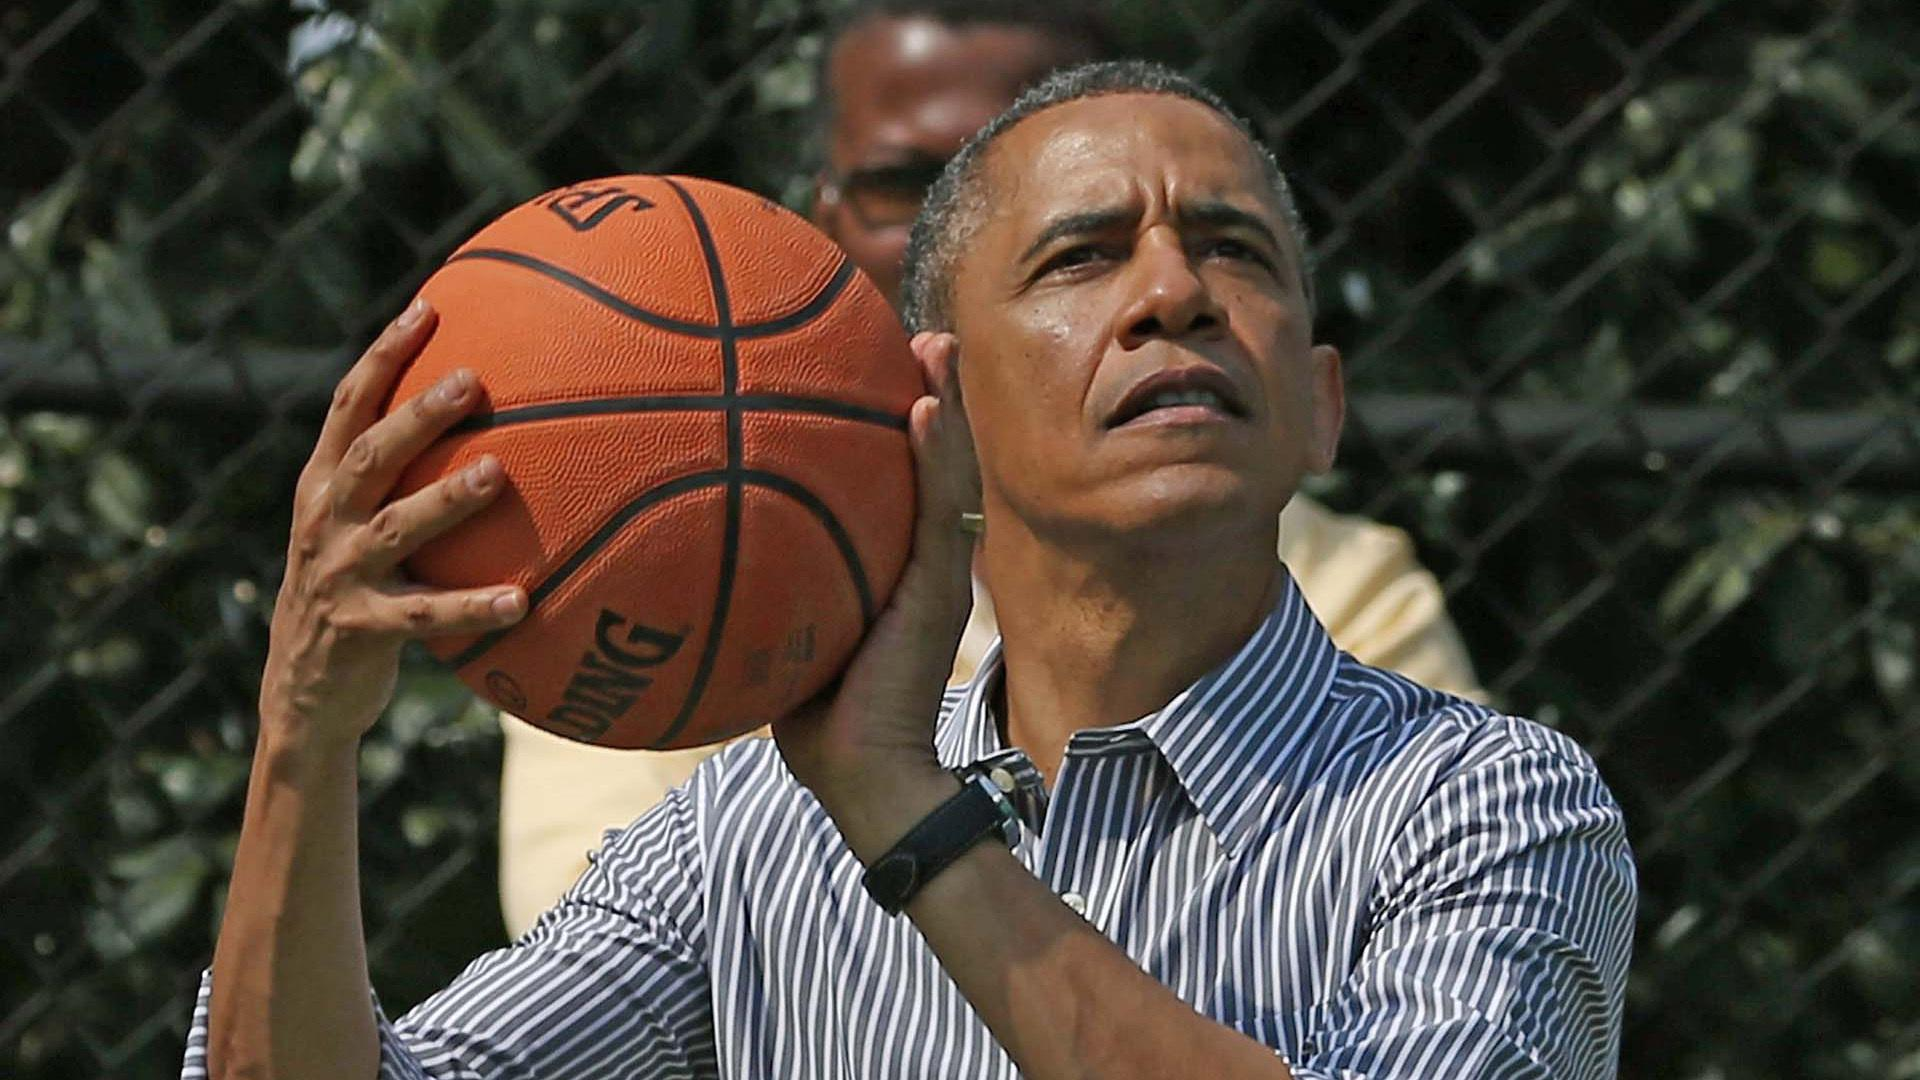 President Obama In Talks of Owning NBA Team